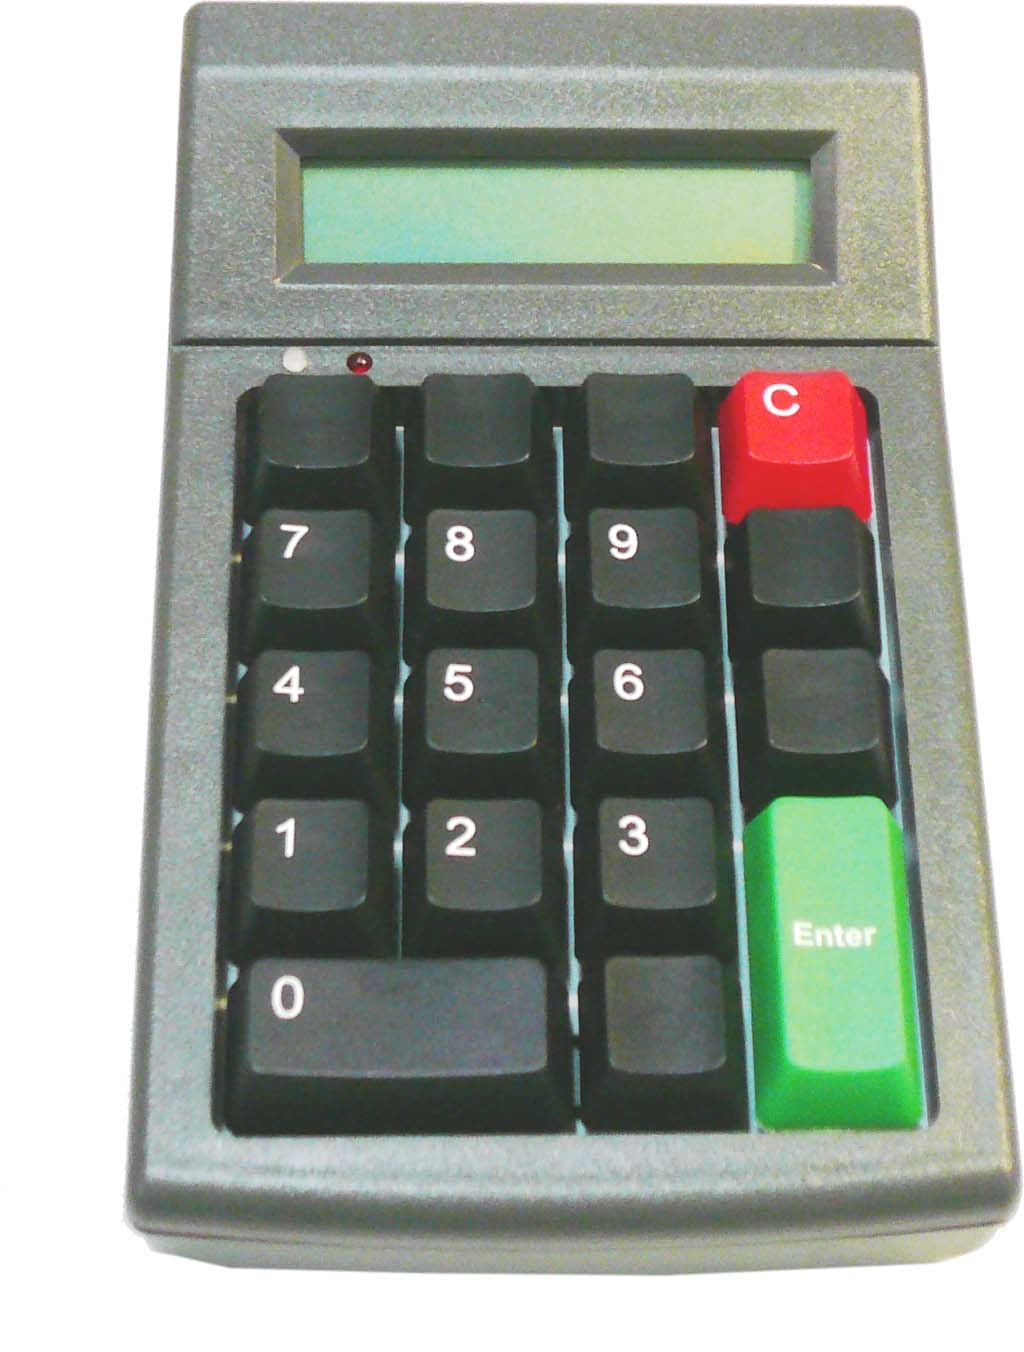 School Lunch And Cafeteria Lcd Keypad Pin Pads